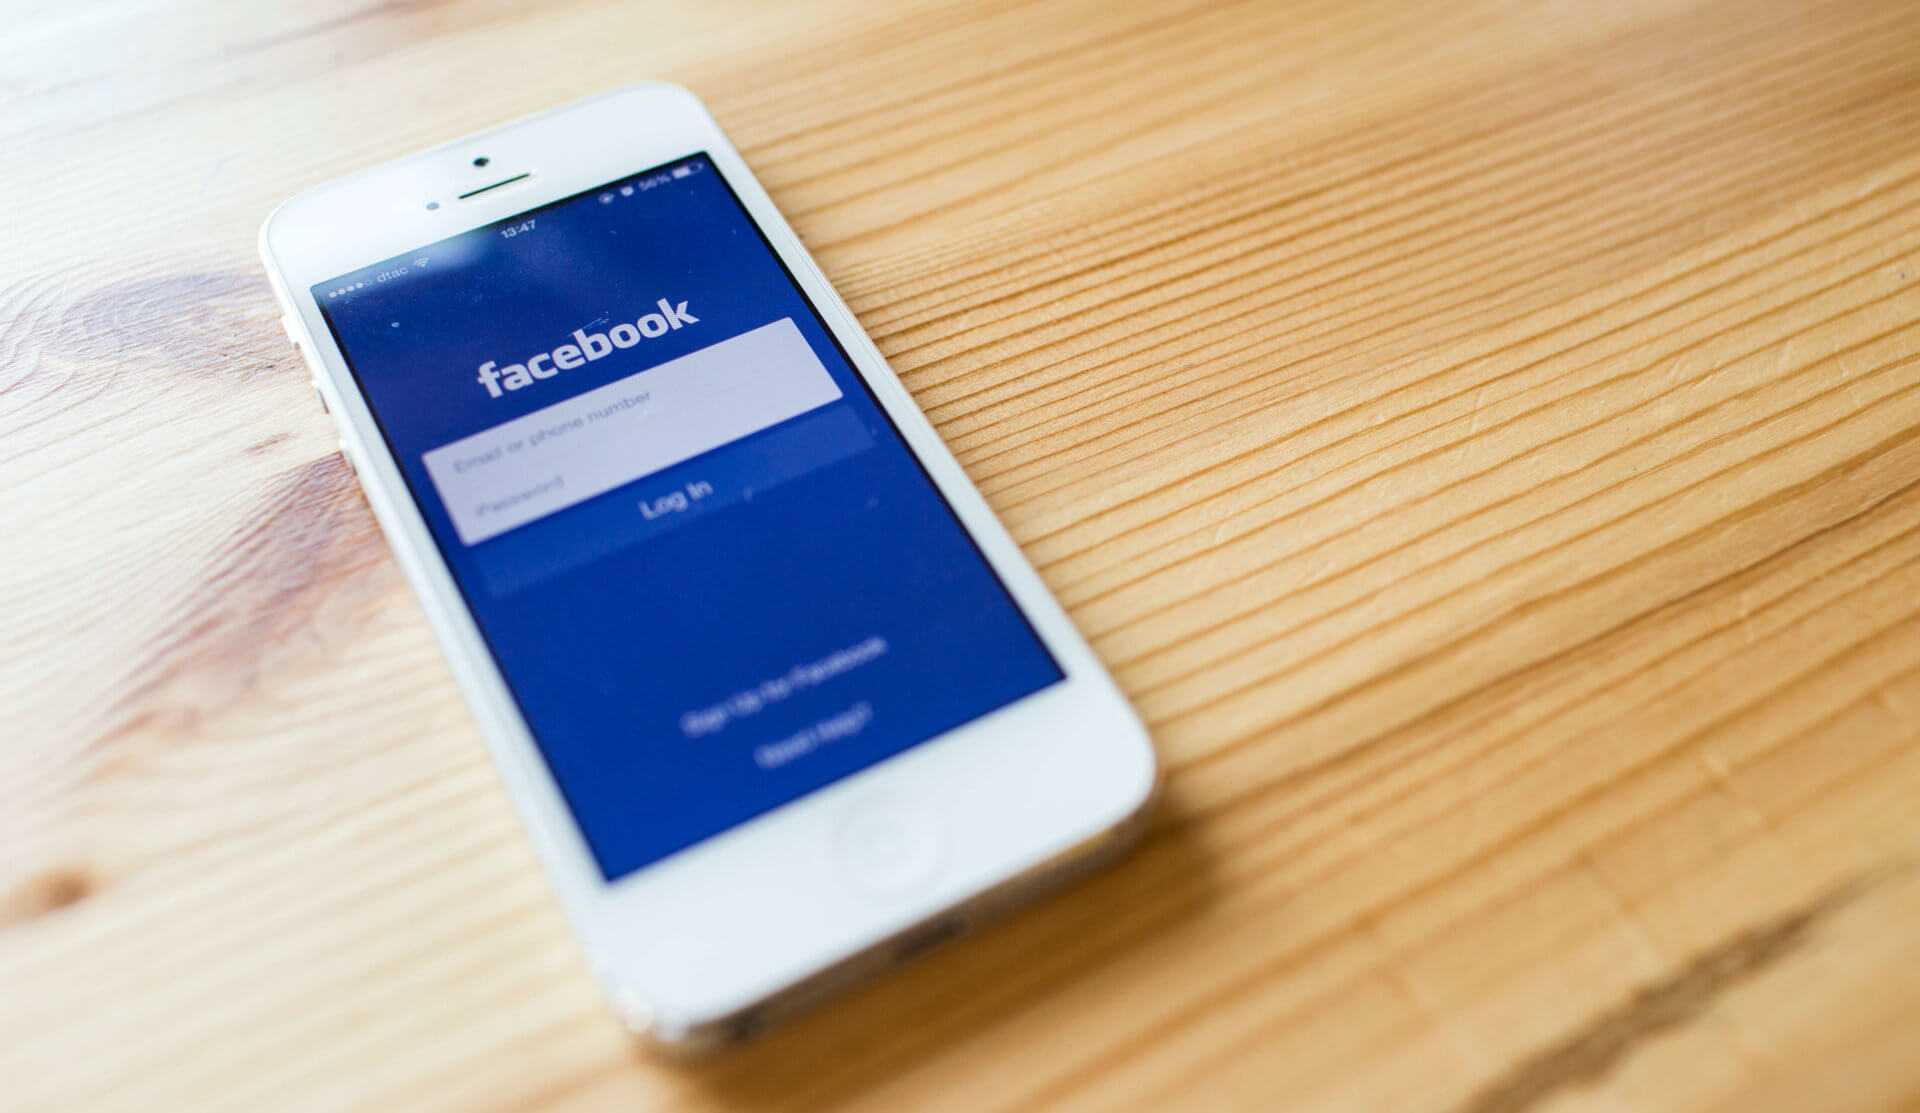 Facebook application sign in page on Apple iPhone 5. Facebook is largest and most popular social networking site in the world